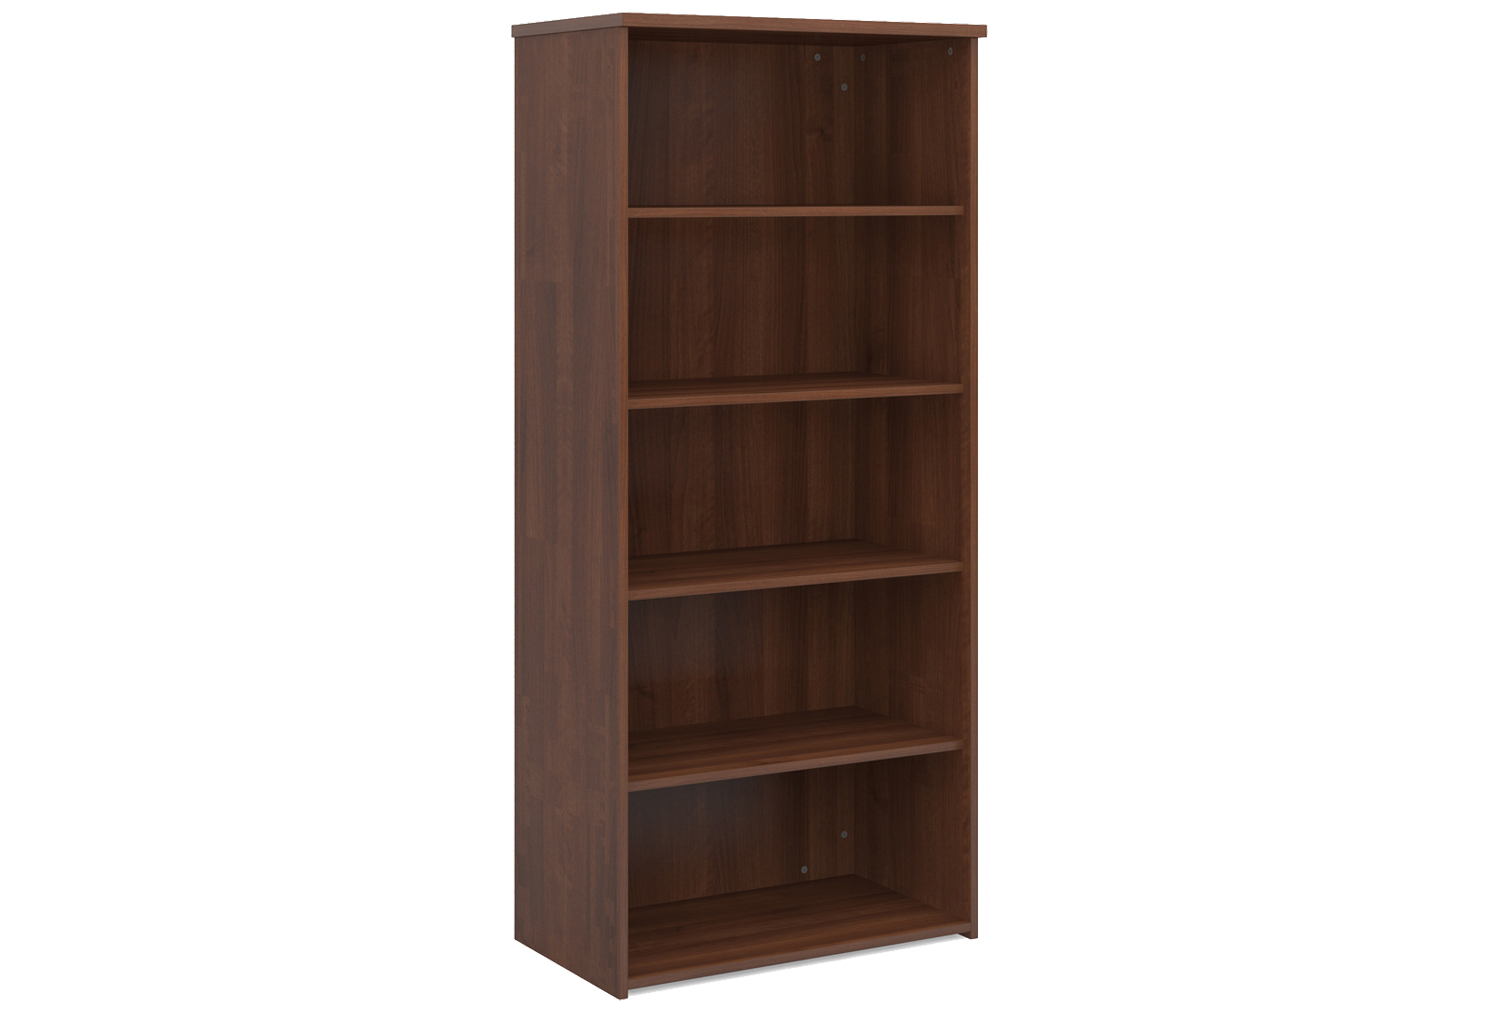 Image of Value Line Bookcases, Walnut